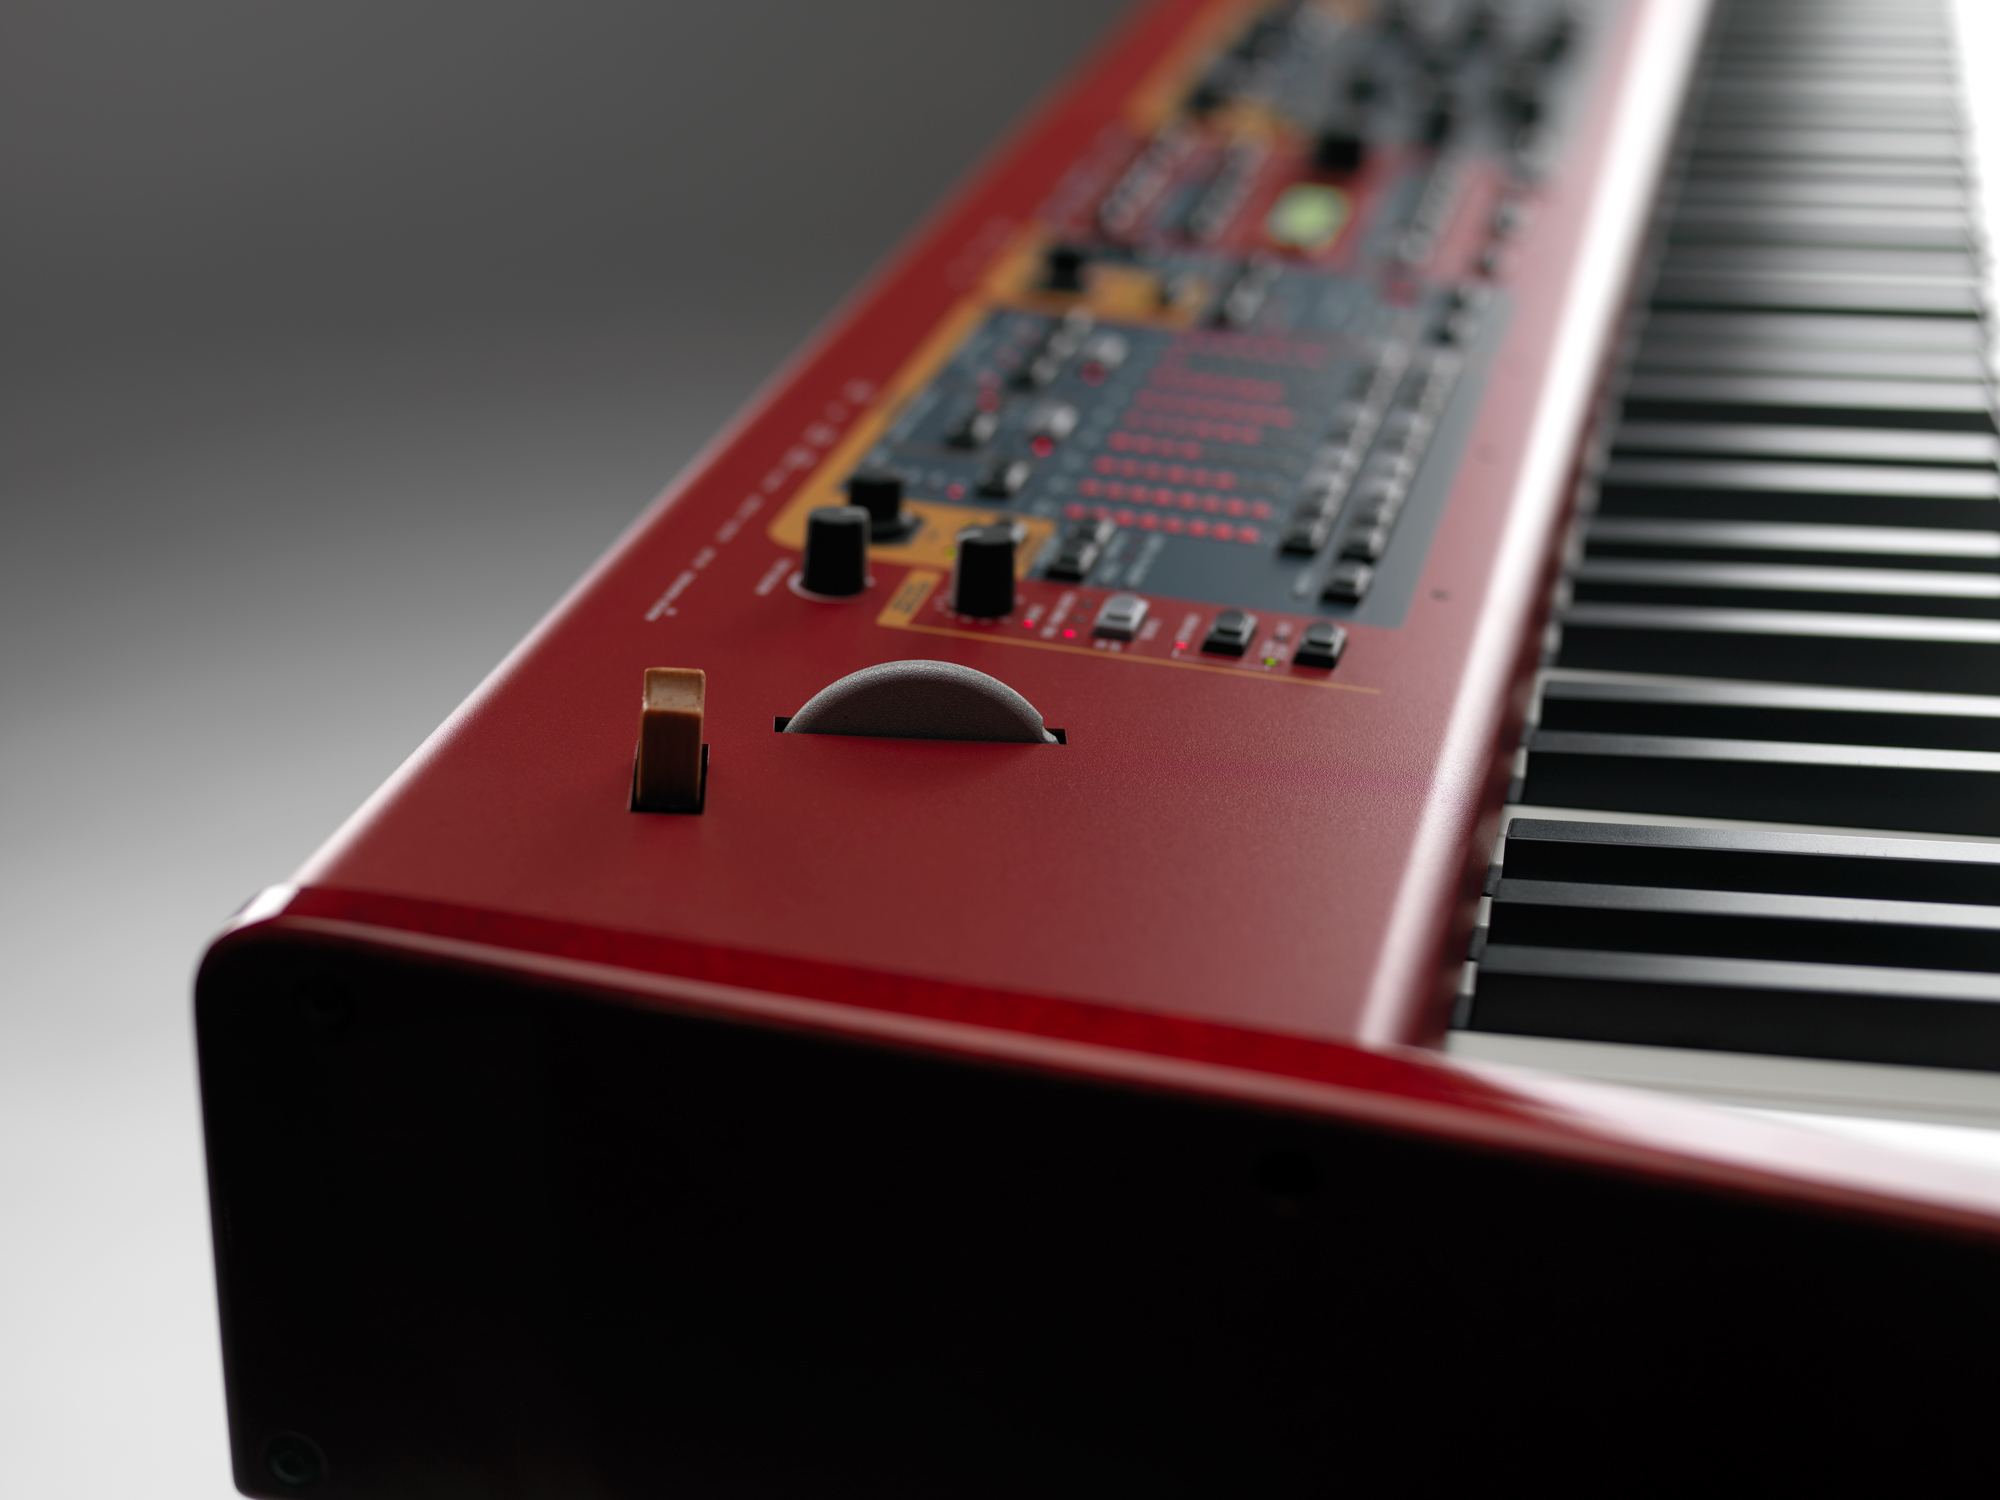 new clavia nord stage 2 ex digital synthesizer keyboards audiofanzine. Black Bedroom Furniture Sets. Home Design Ideas